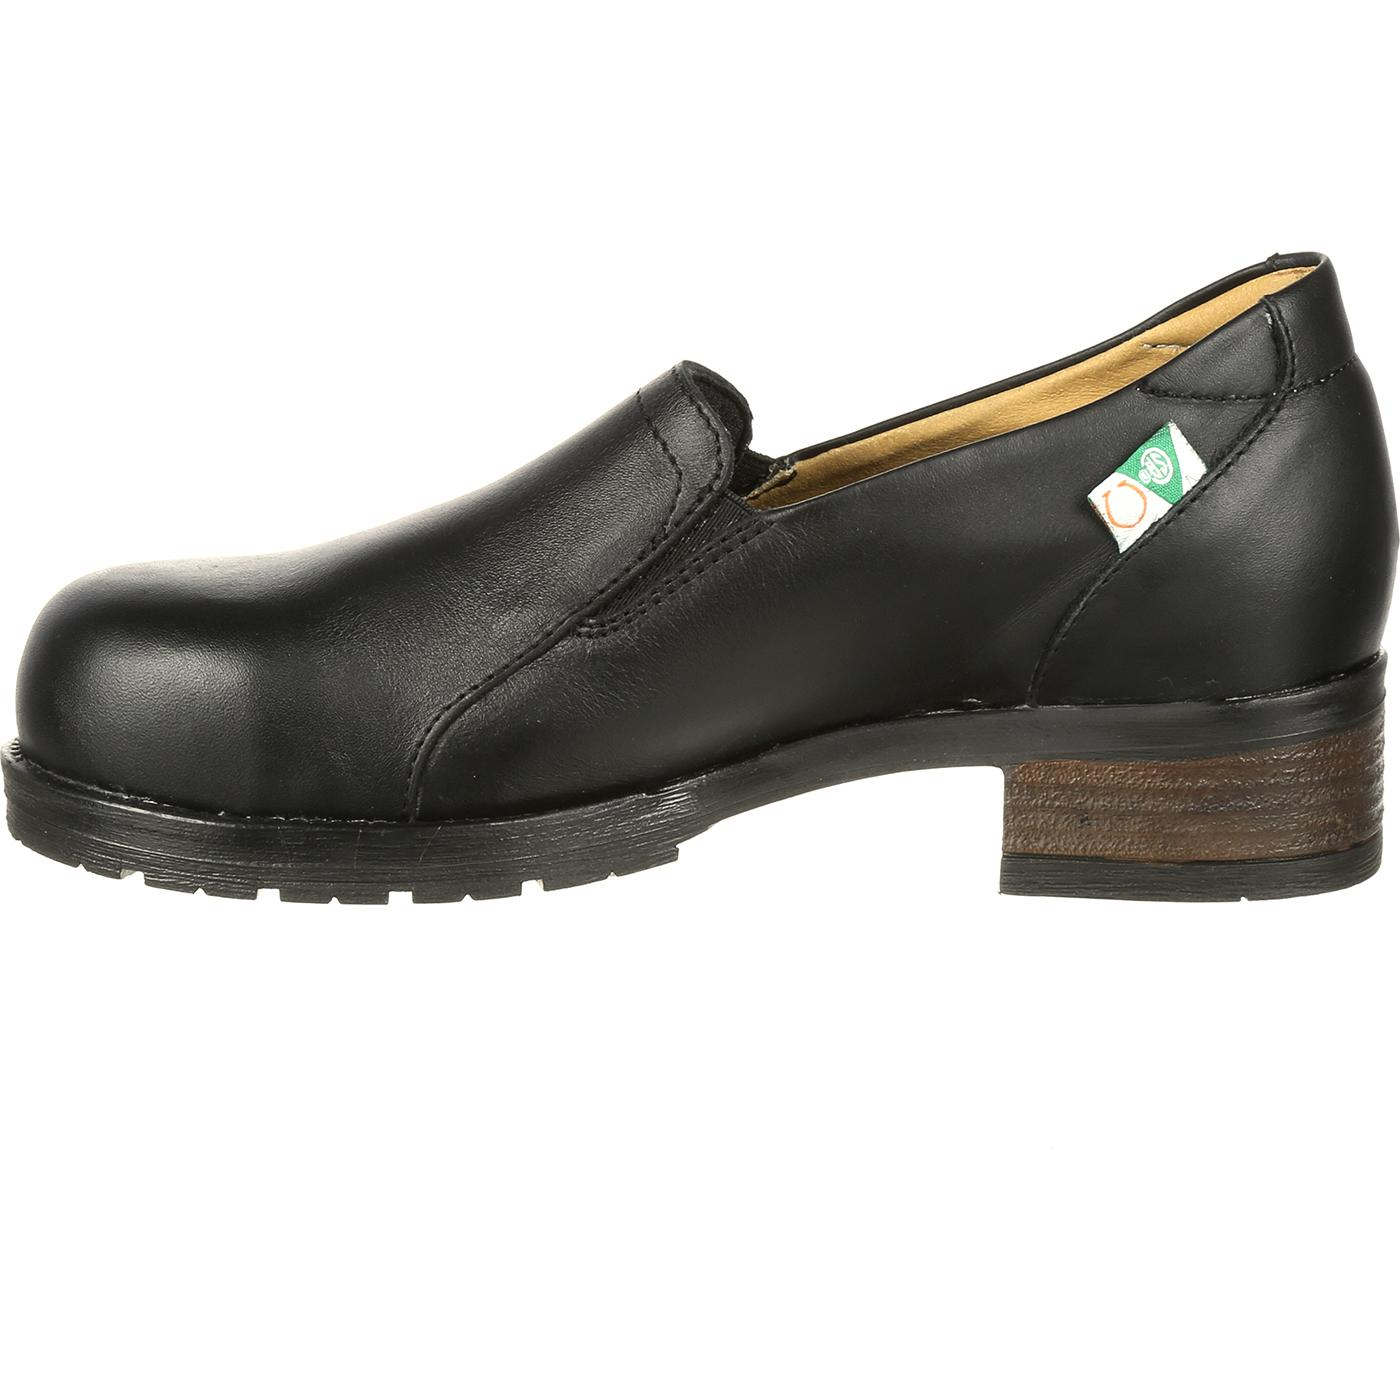 Womens Csa Work Shoes